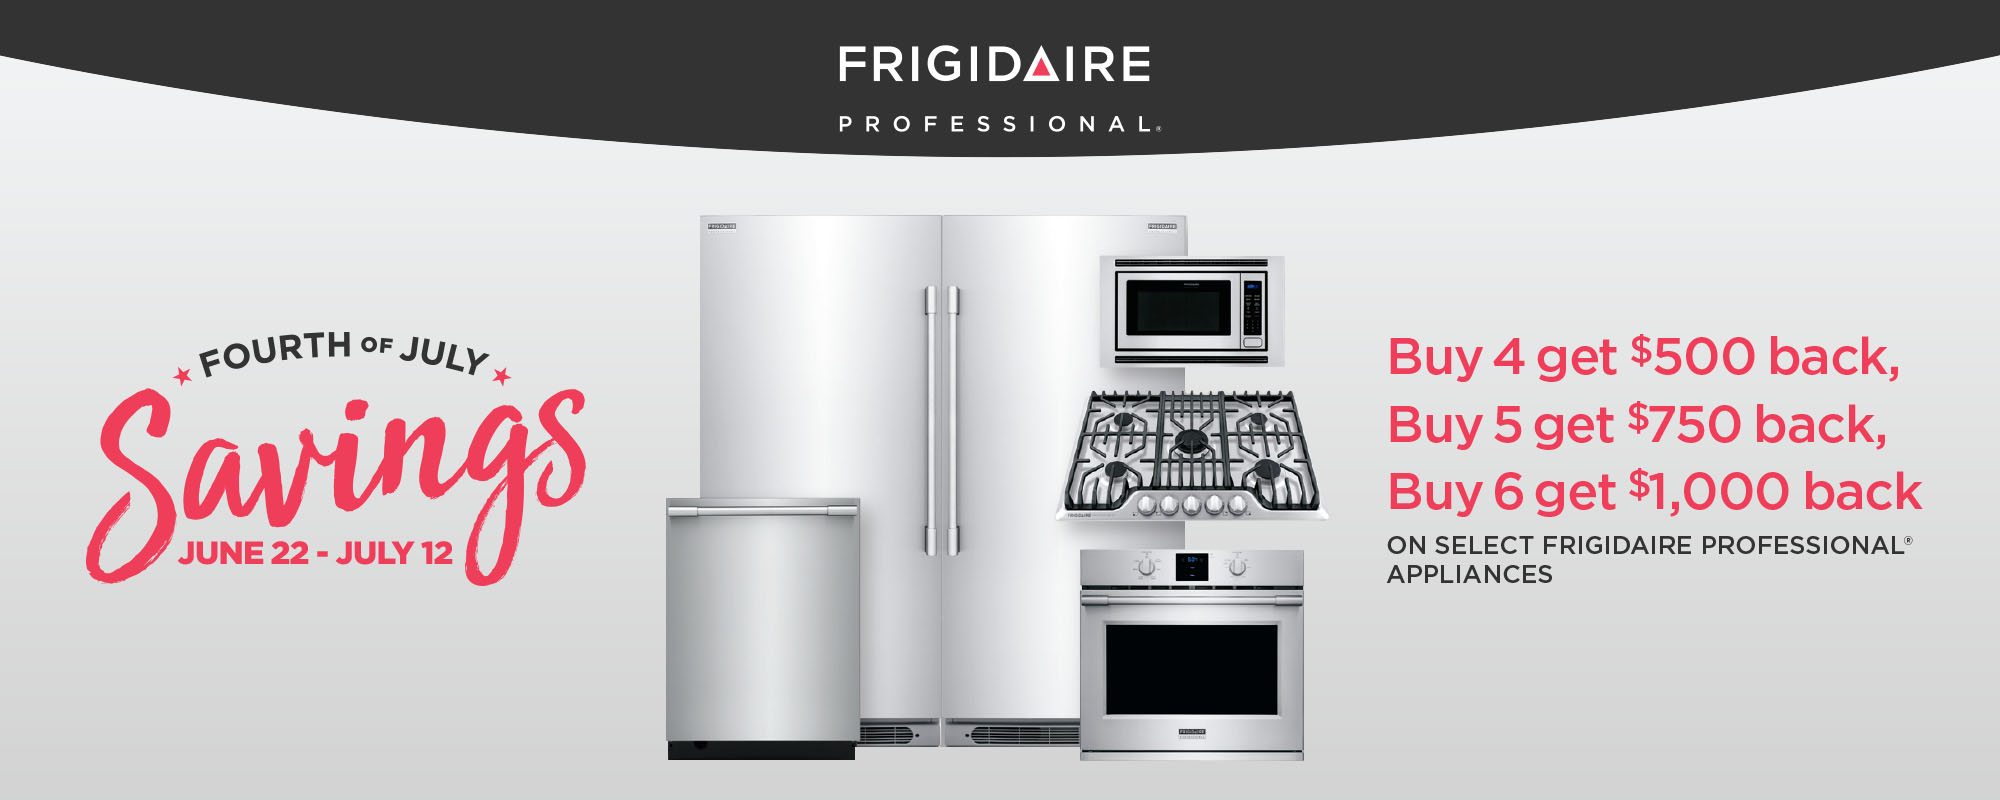 Frigidaire Professional - Fourth of July Savings